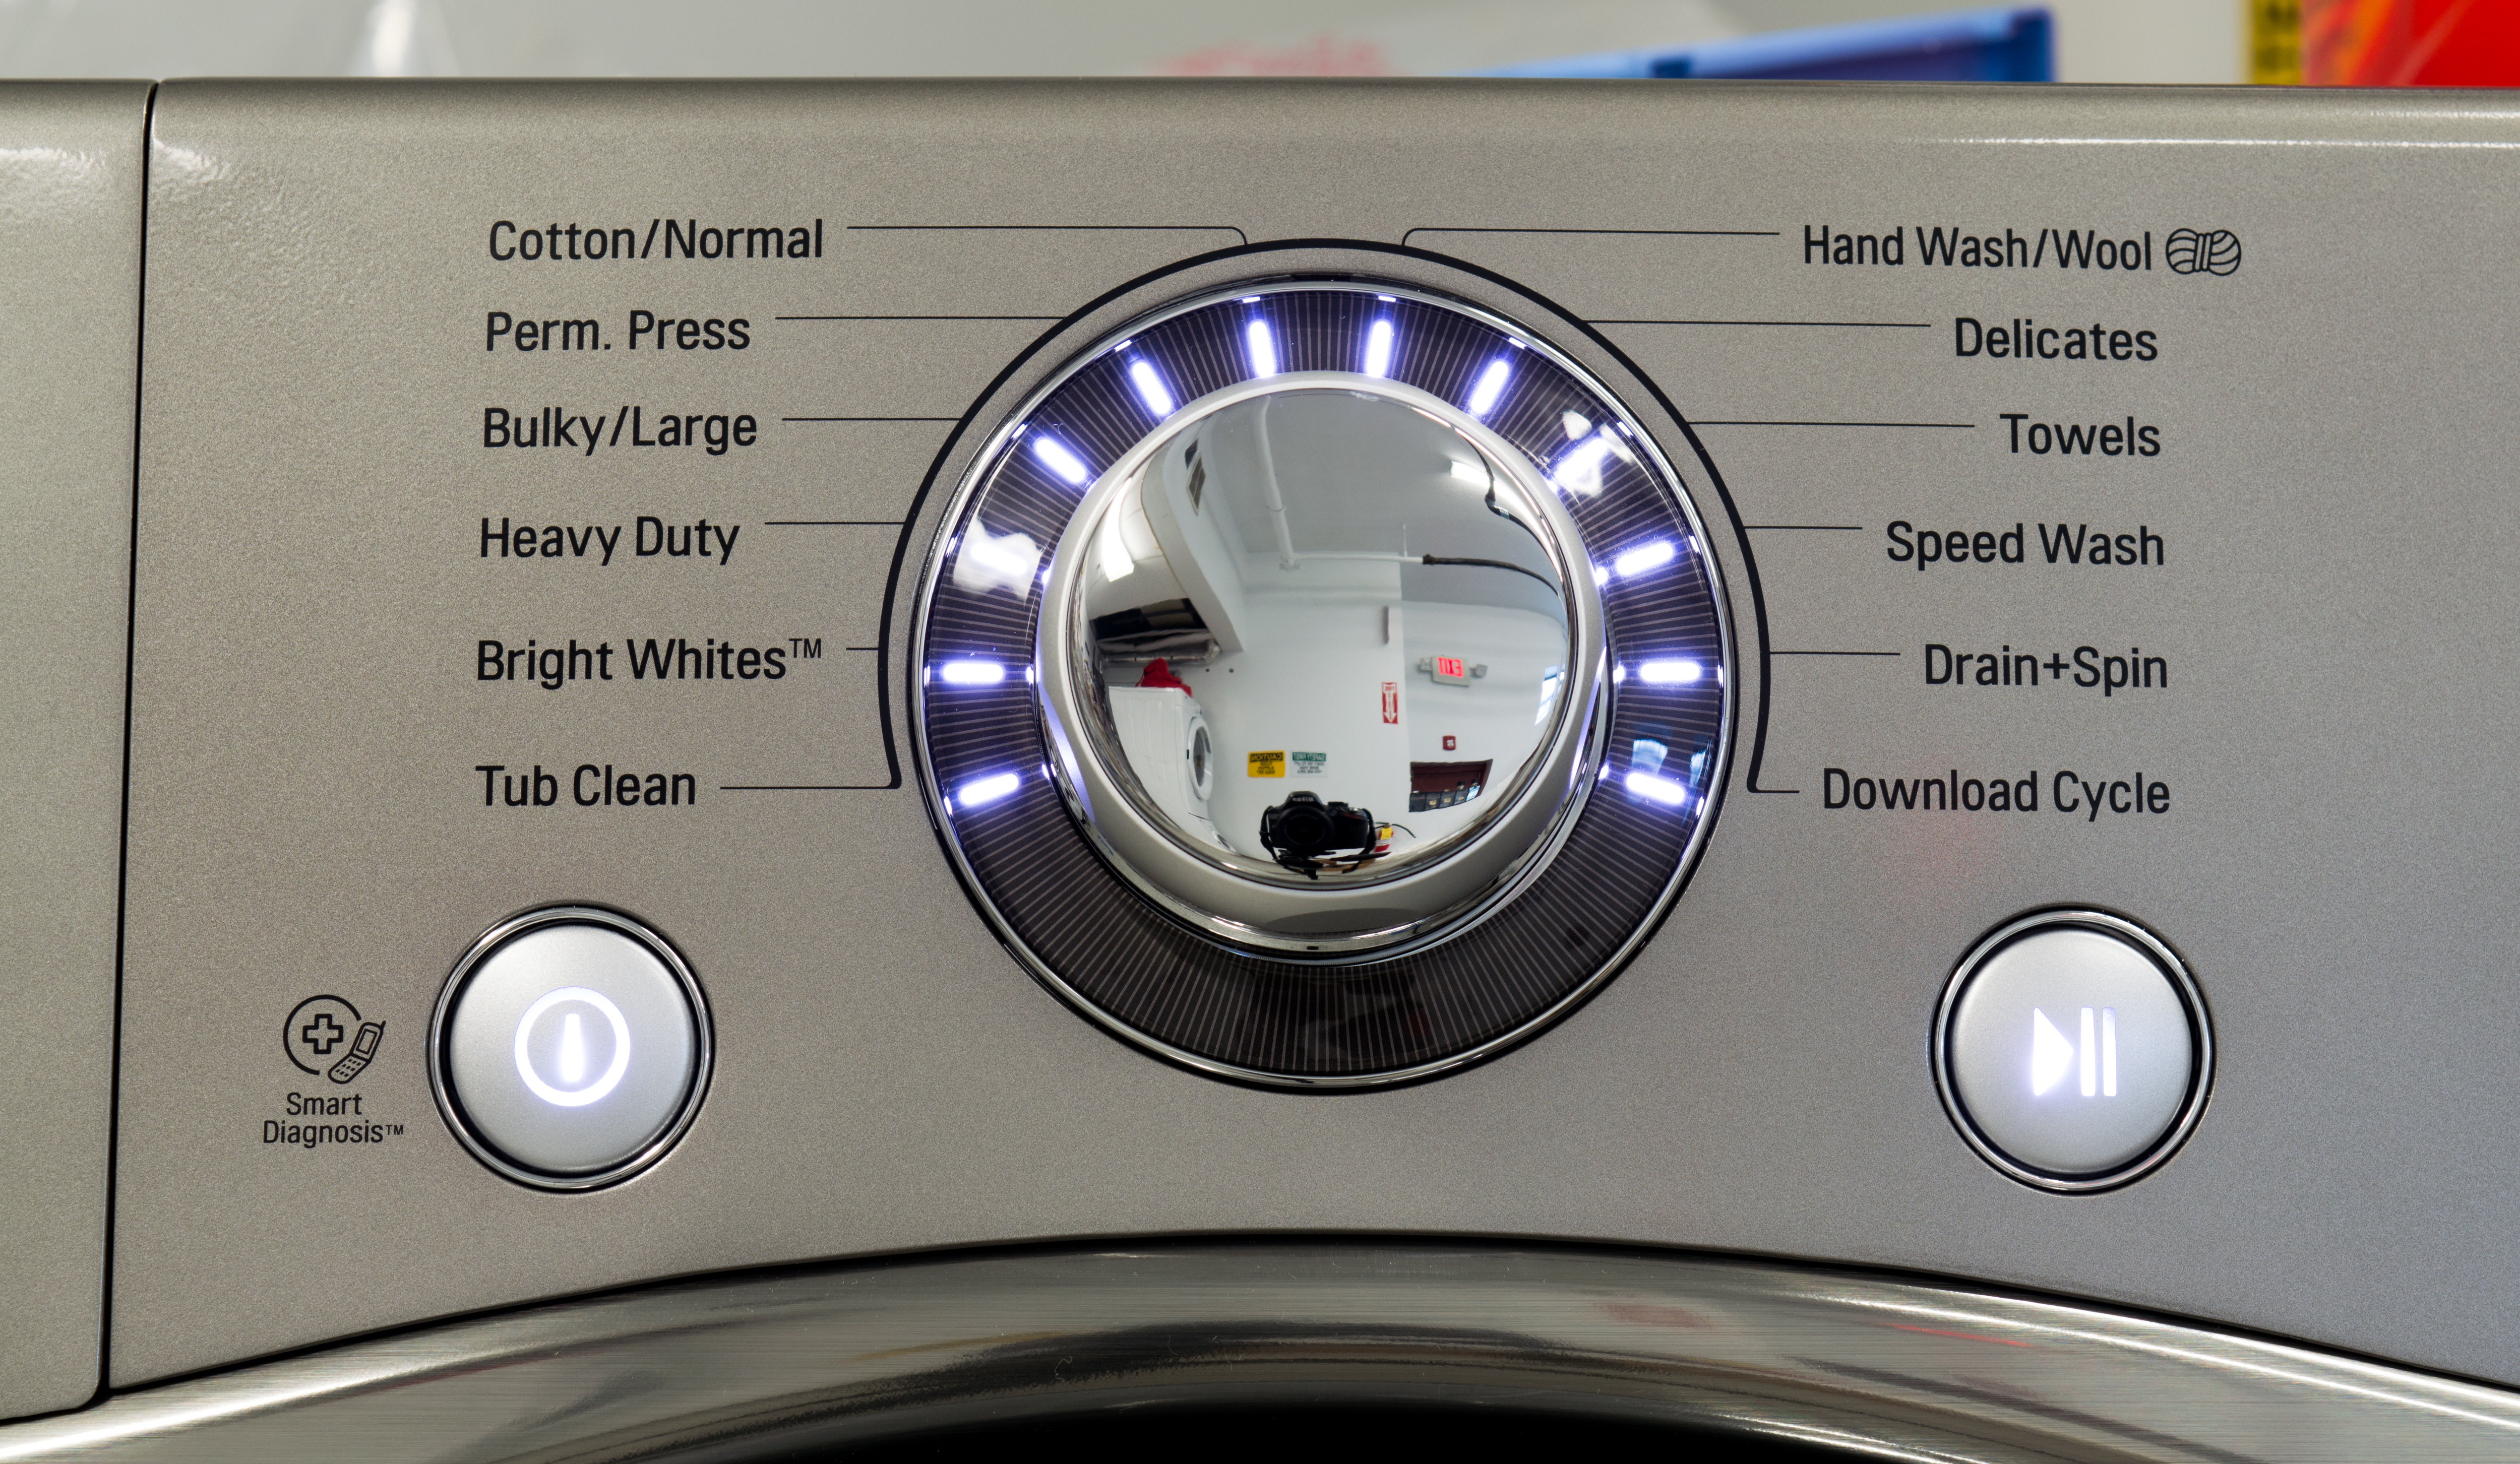 The WM3575CV has a cycle to address nearly every laundry situation.